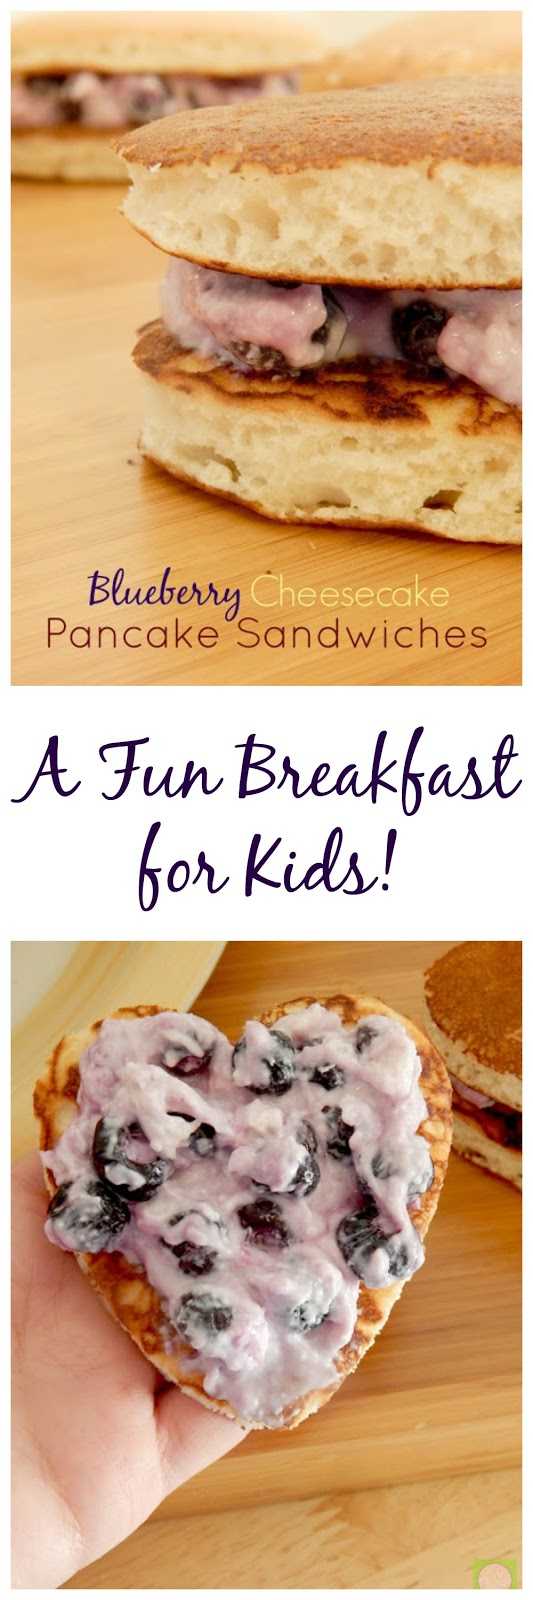 blueberry cheesecake pancake sandwiches (sweetandsavoryfood.com)